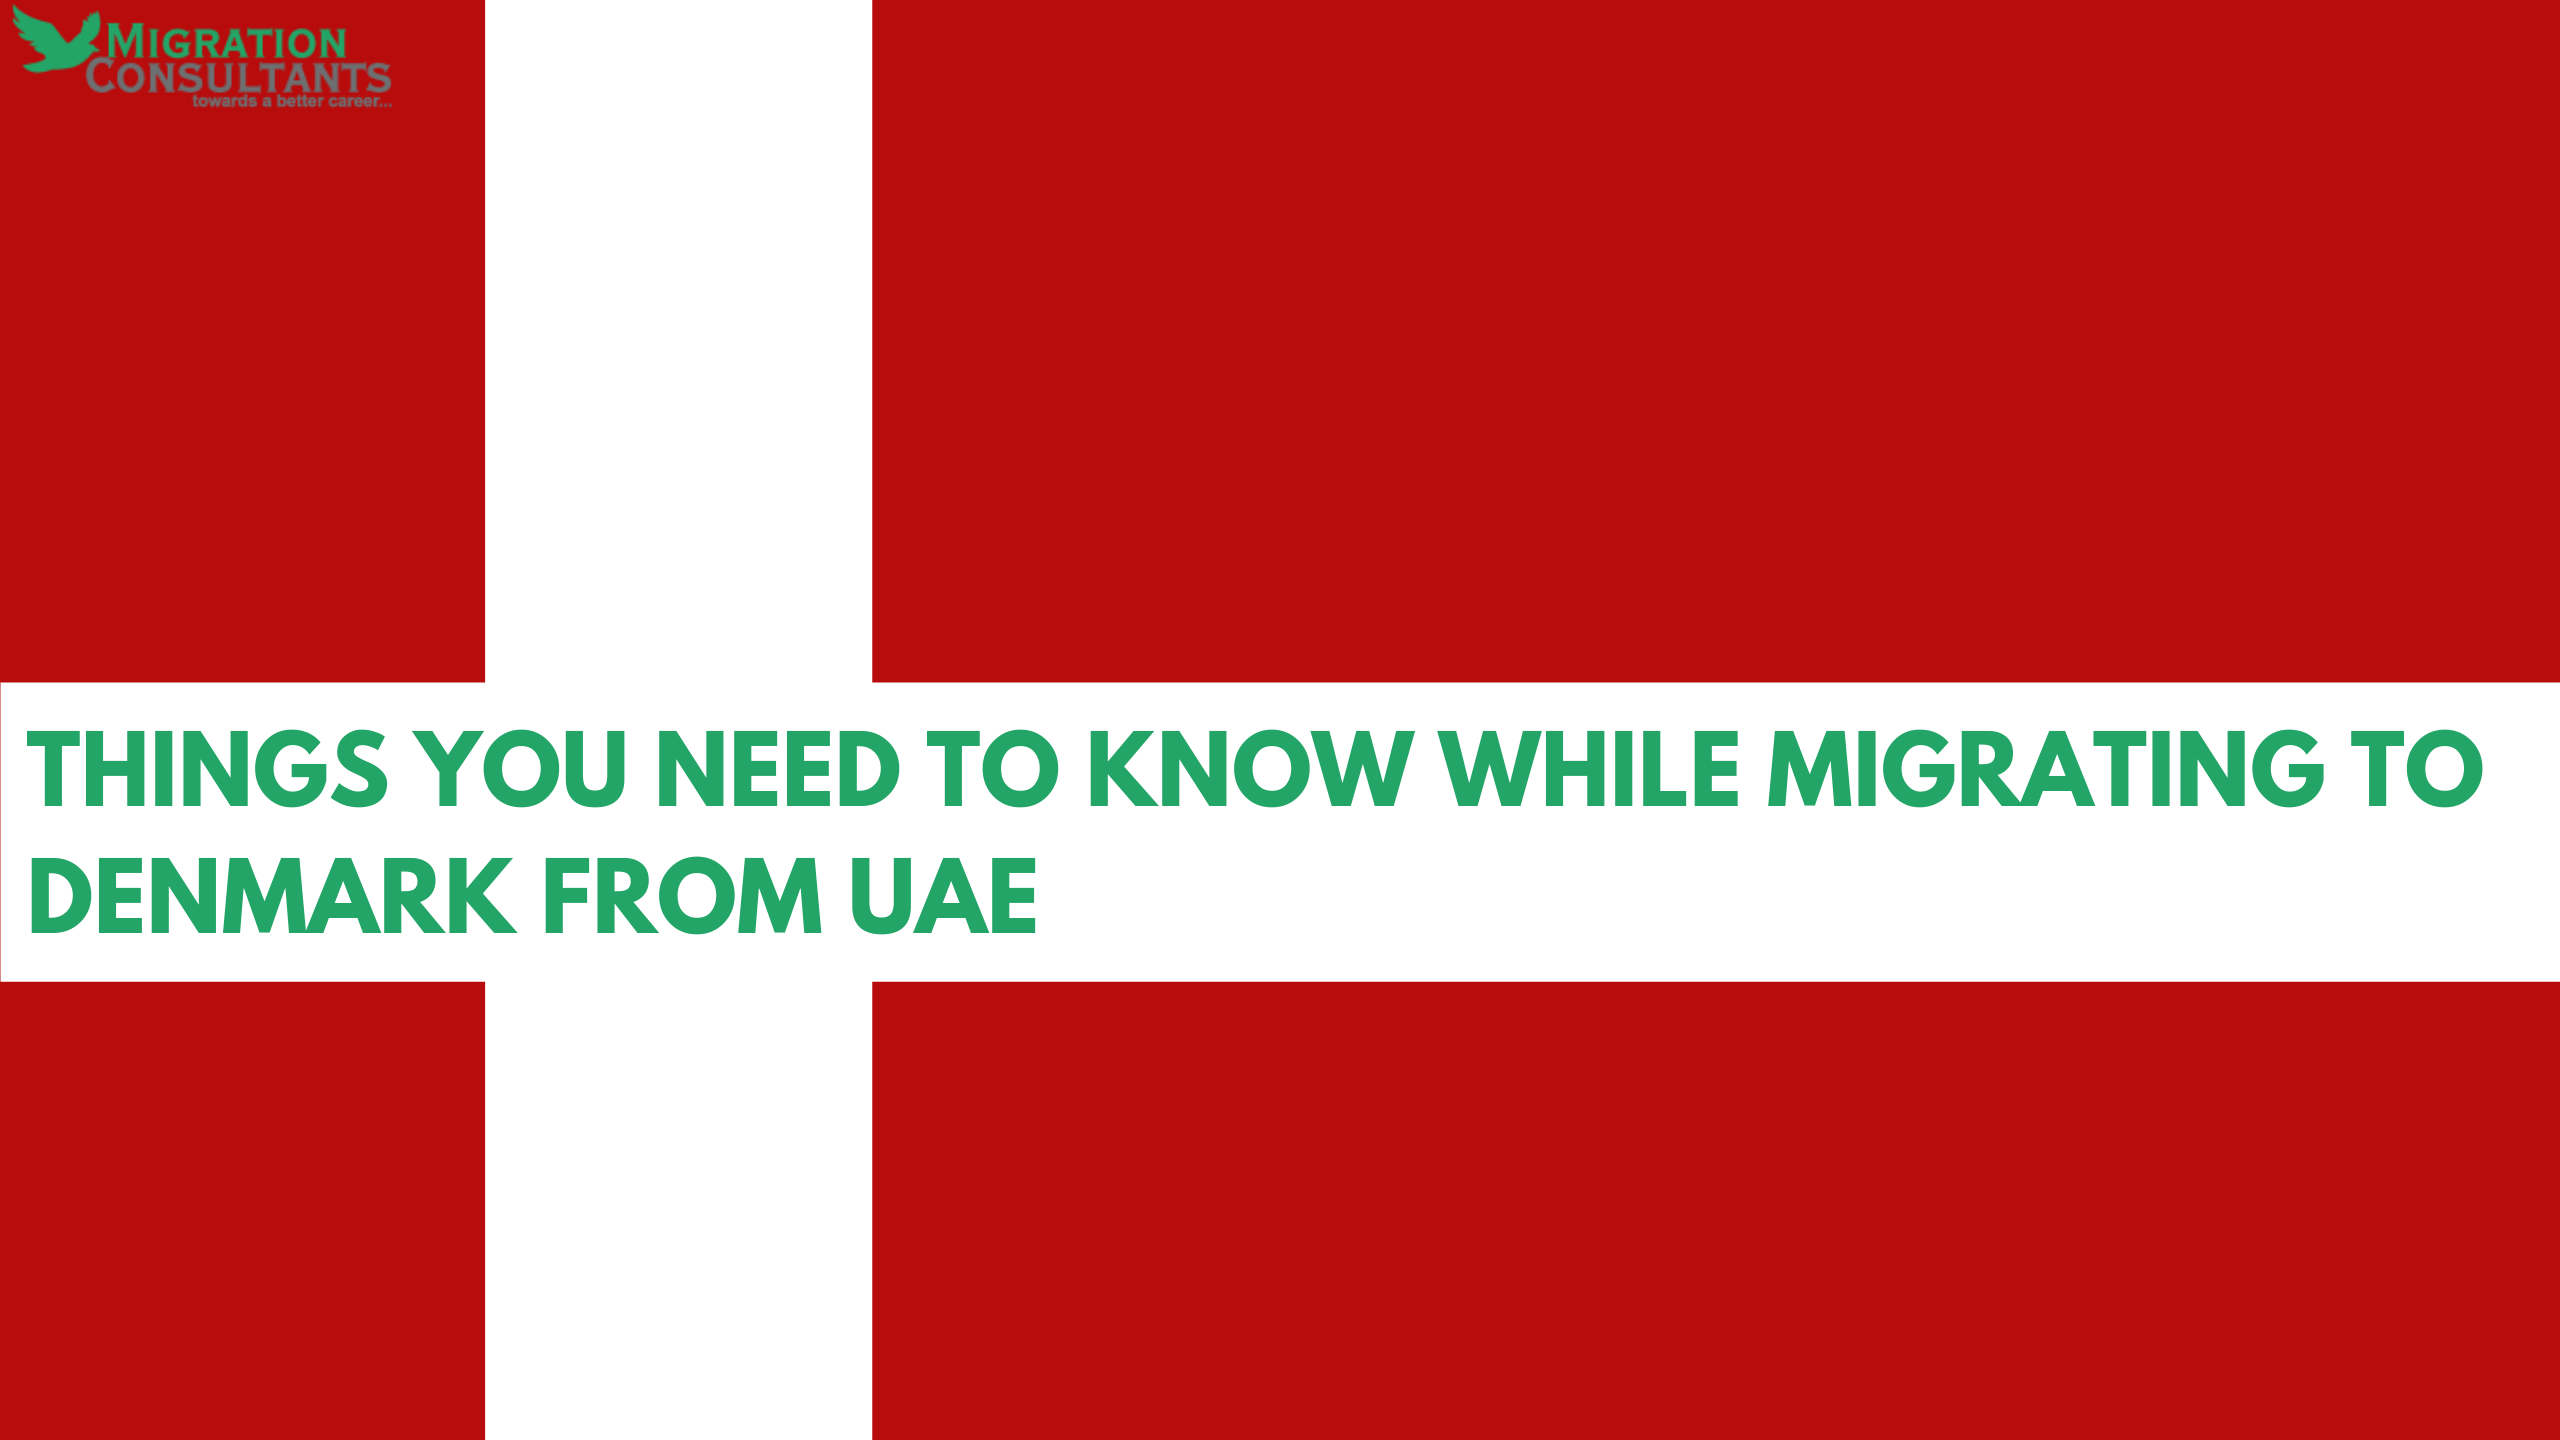 Things you need to know while migrating to Denmark from UAE